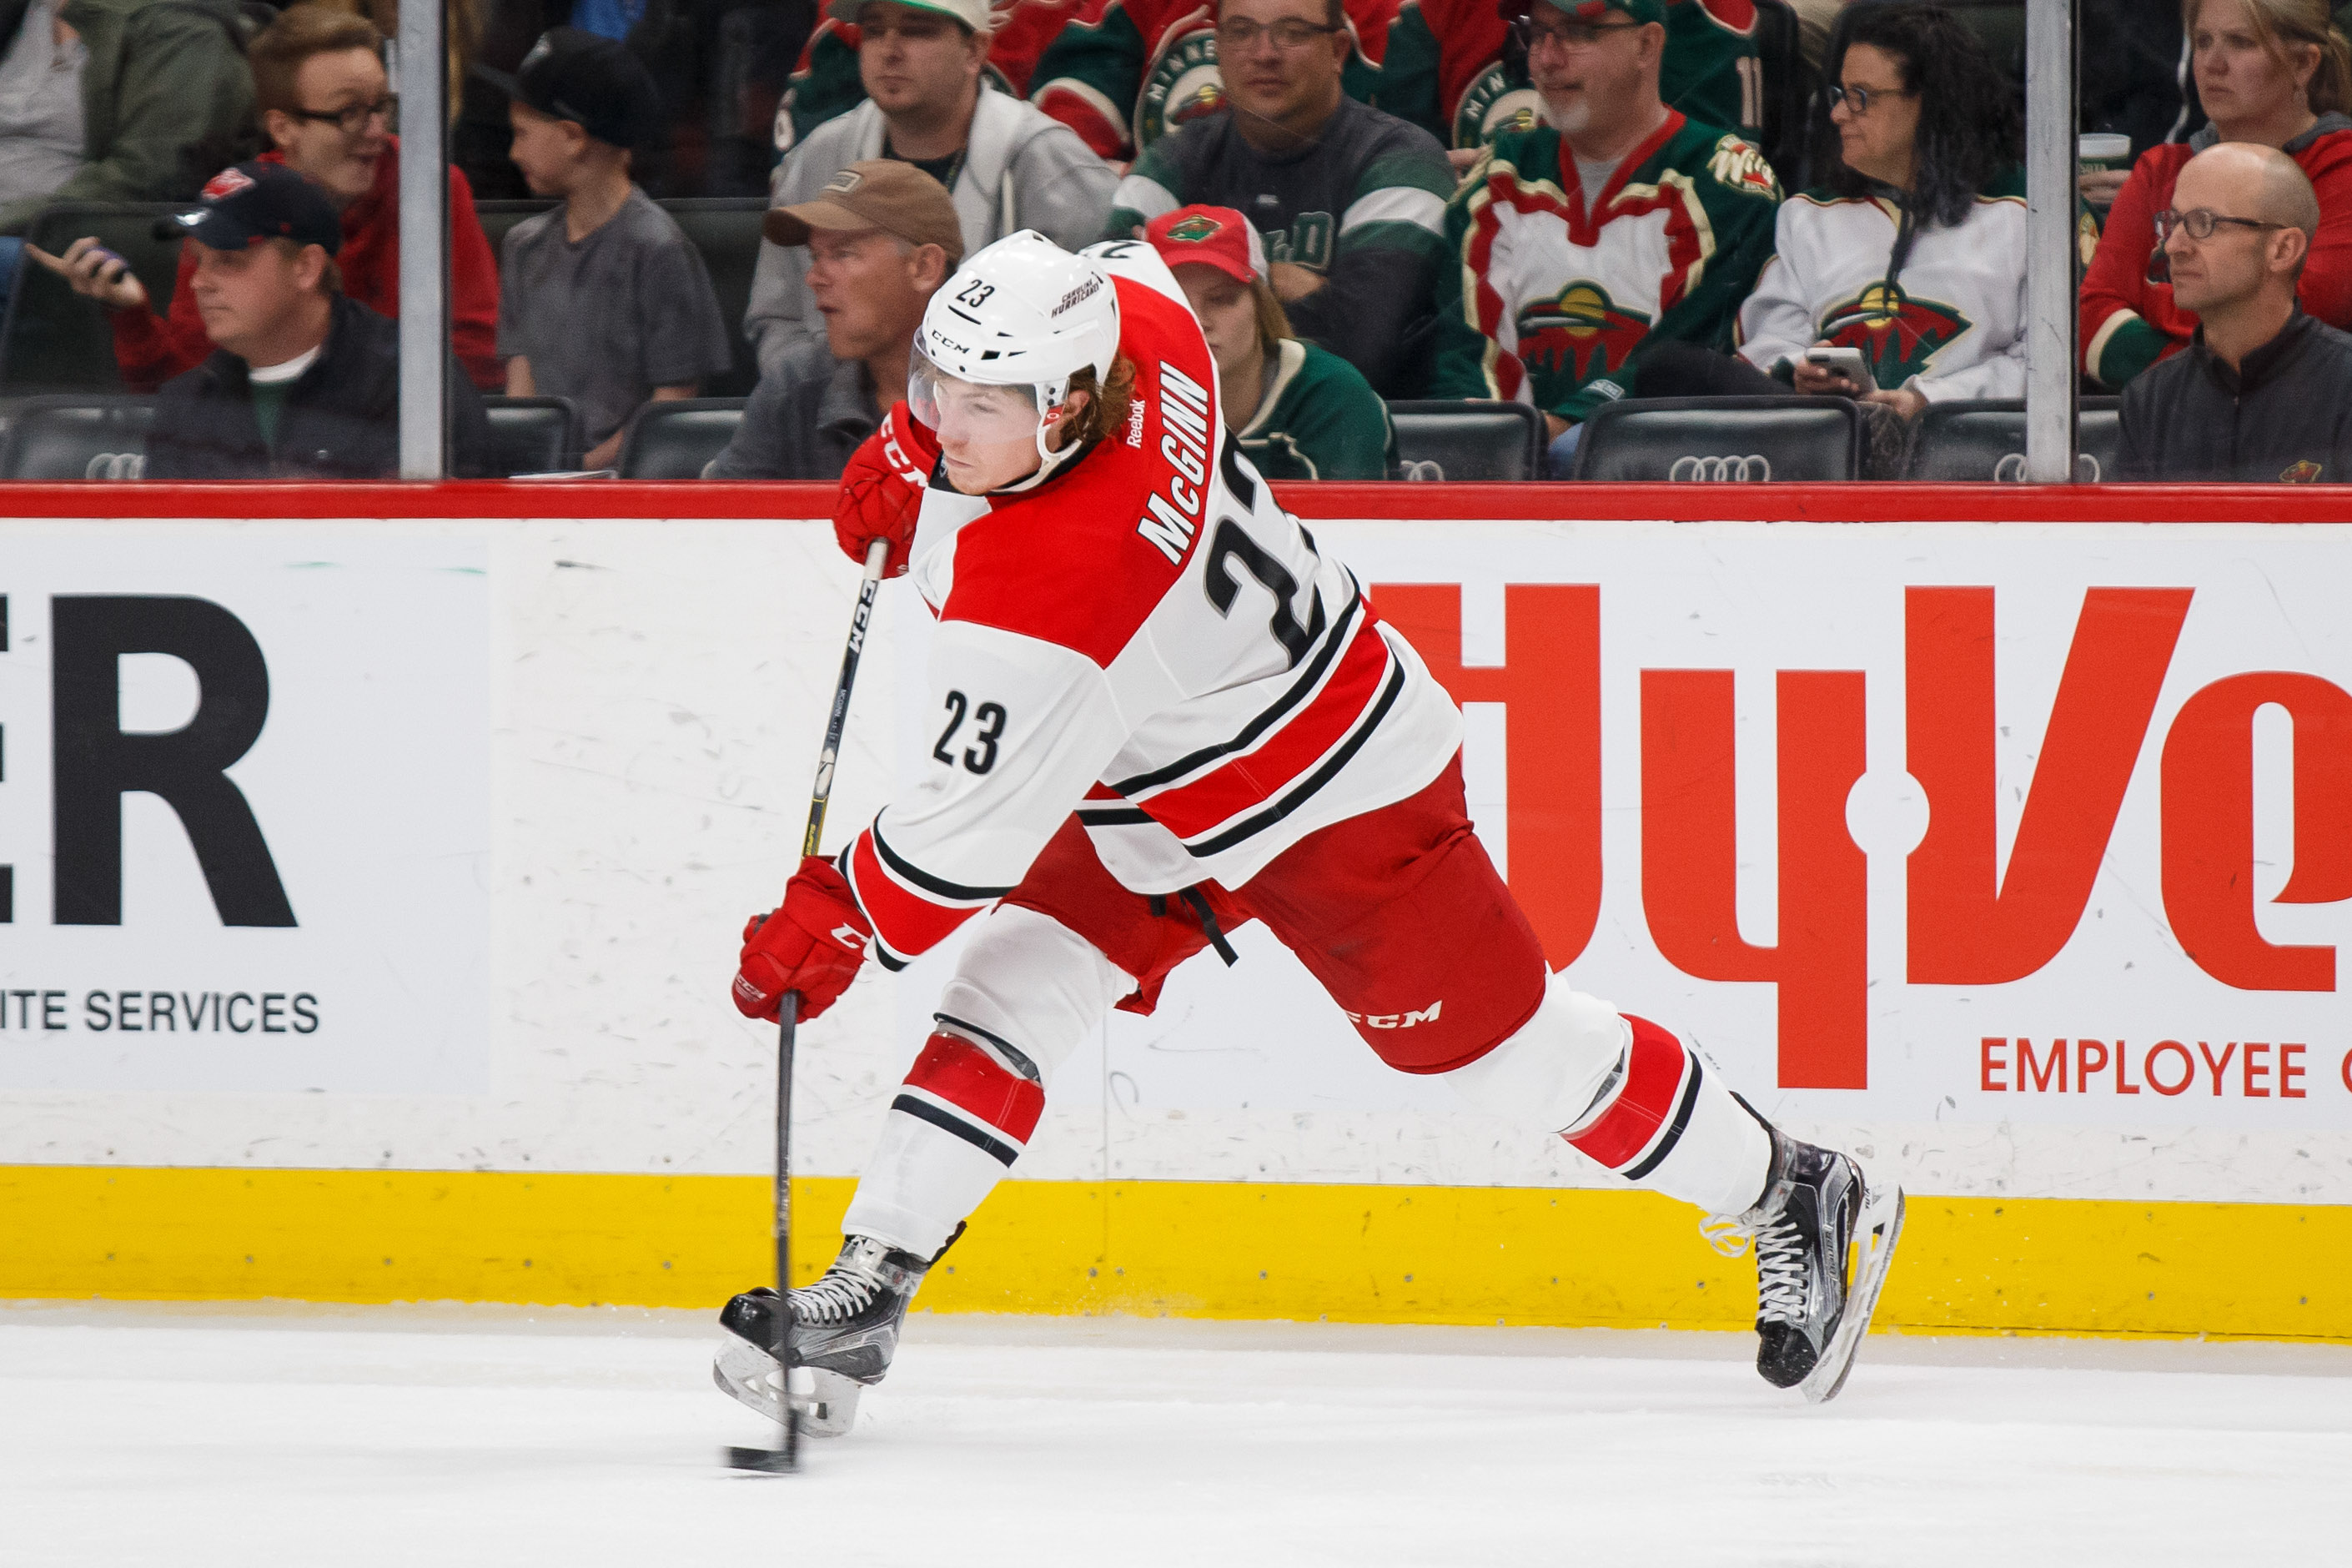 10007441-nhl-carolina-hurricanes-at-minnesota-wild